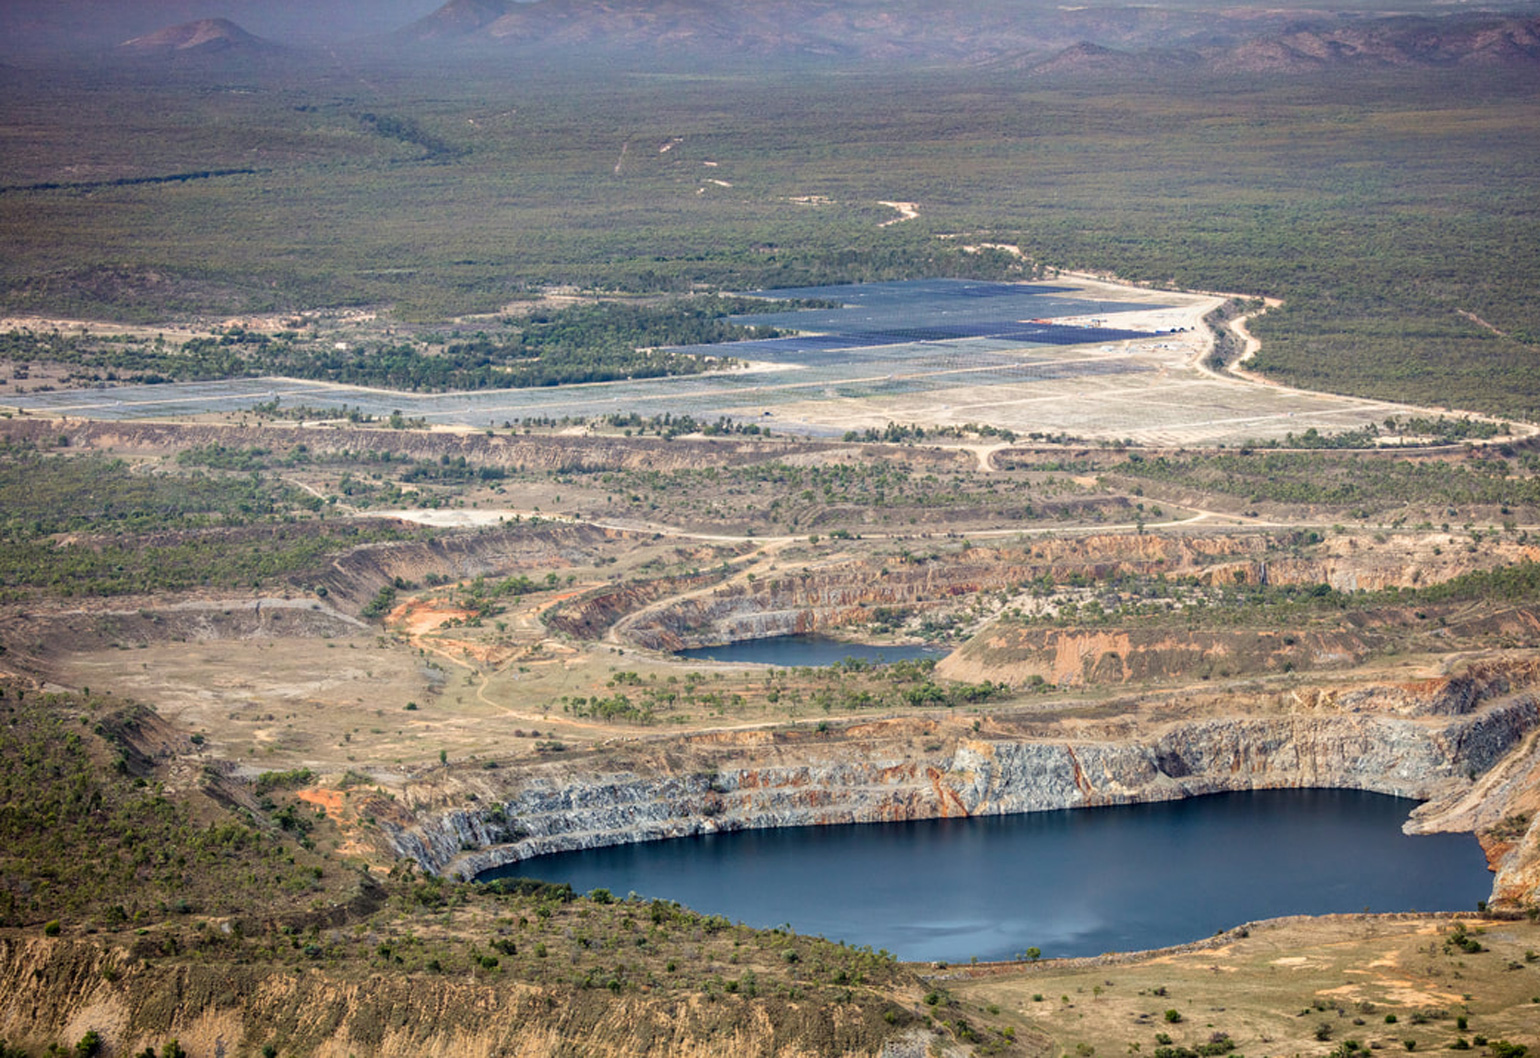 Kidston gold mine is transformed into a hybrid solar and pumped hydro renewable energy project